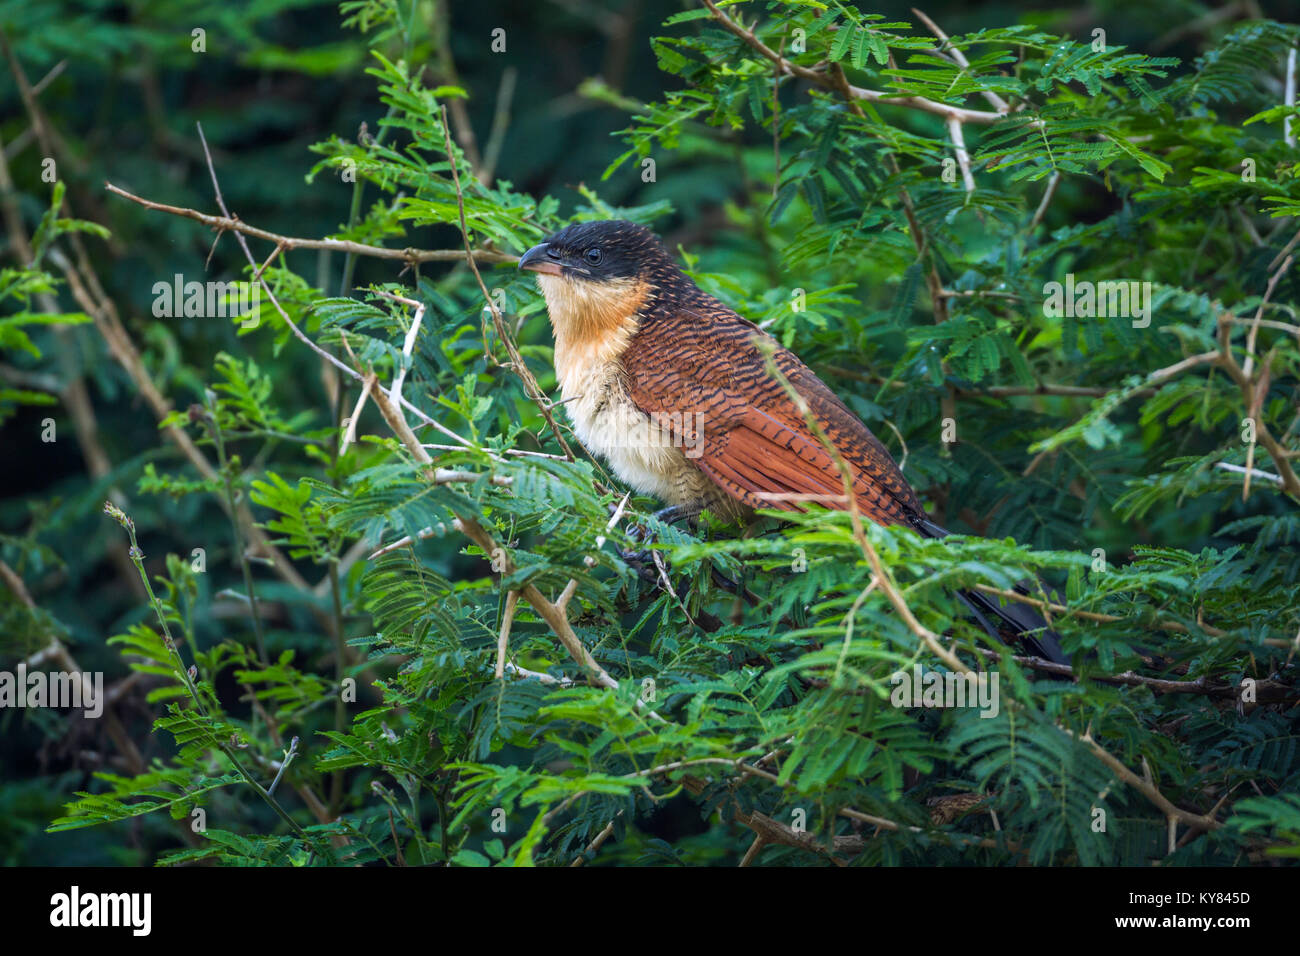 Burchell's coucal in Kruger national park, South Africa ; Specie Centropus burchellii family of Cuculidae - Stock Image